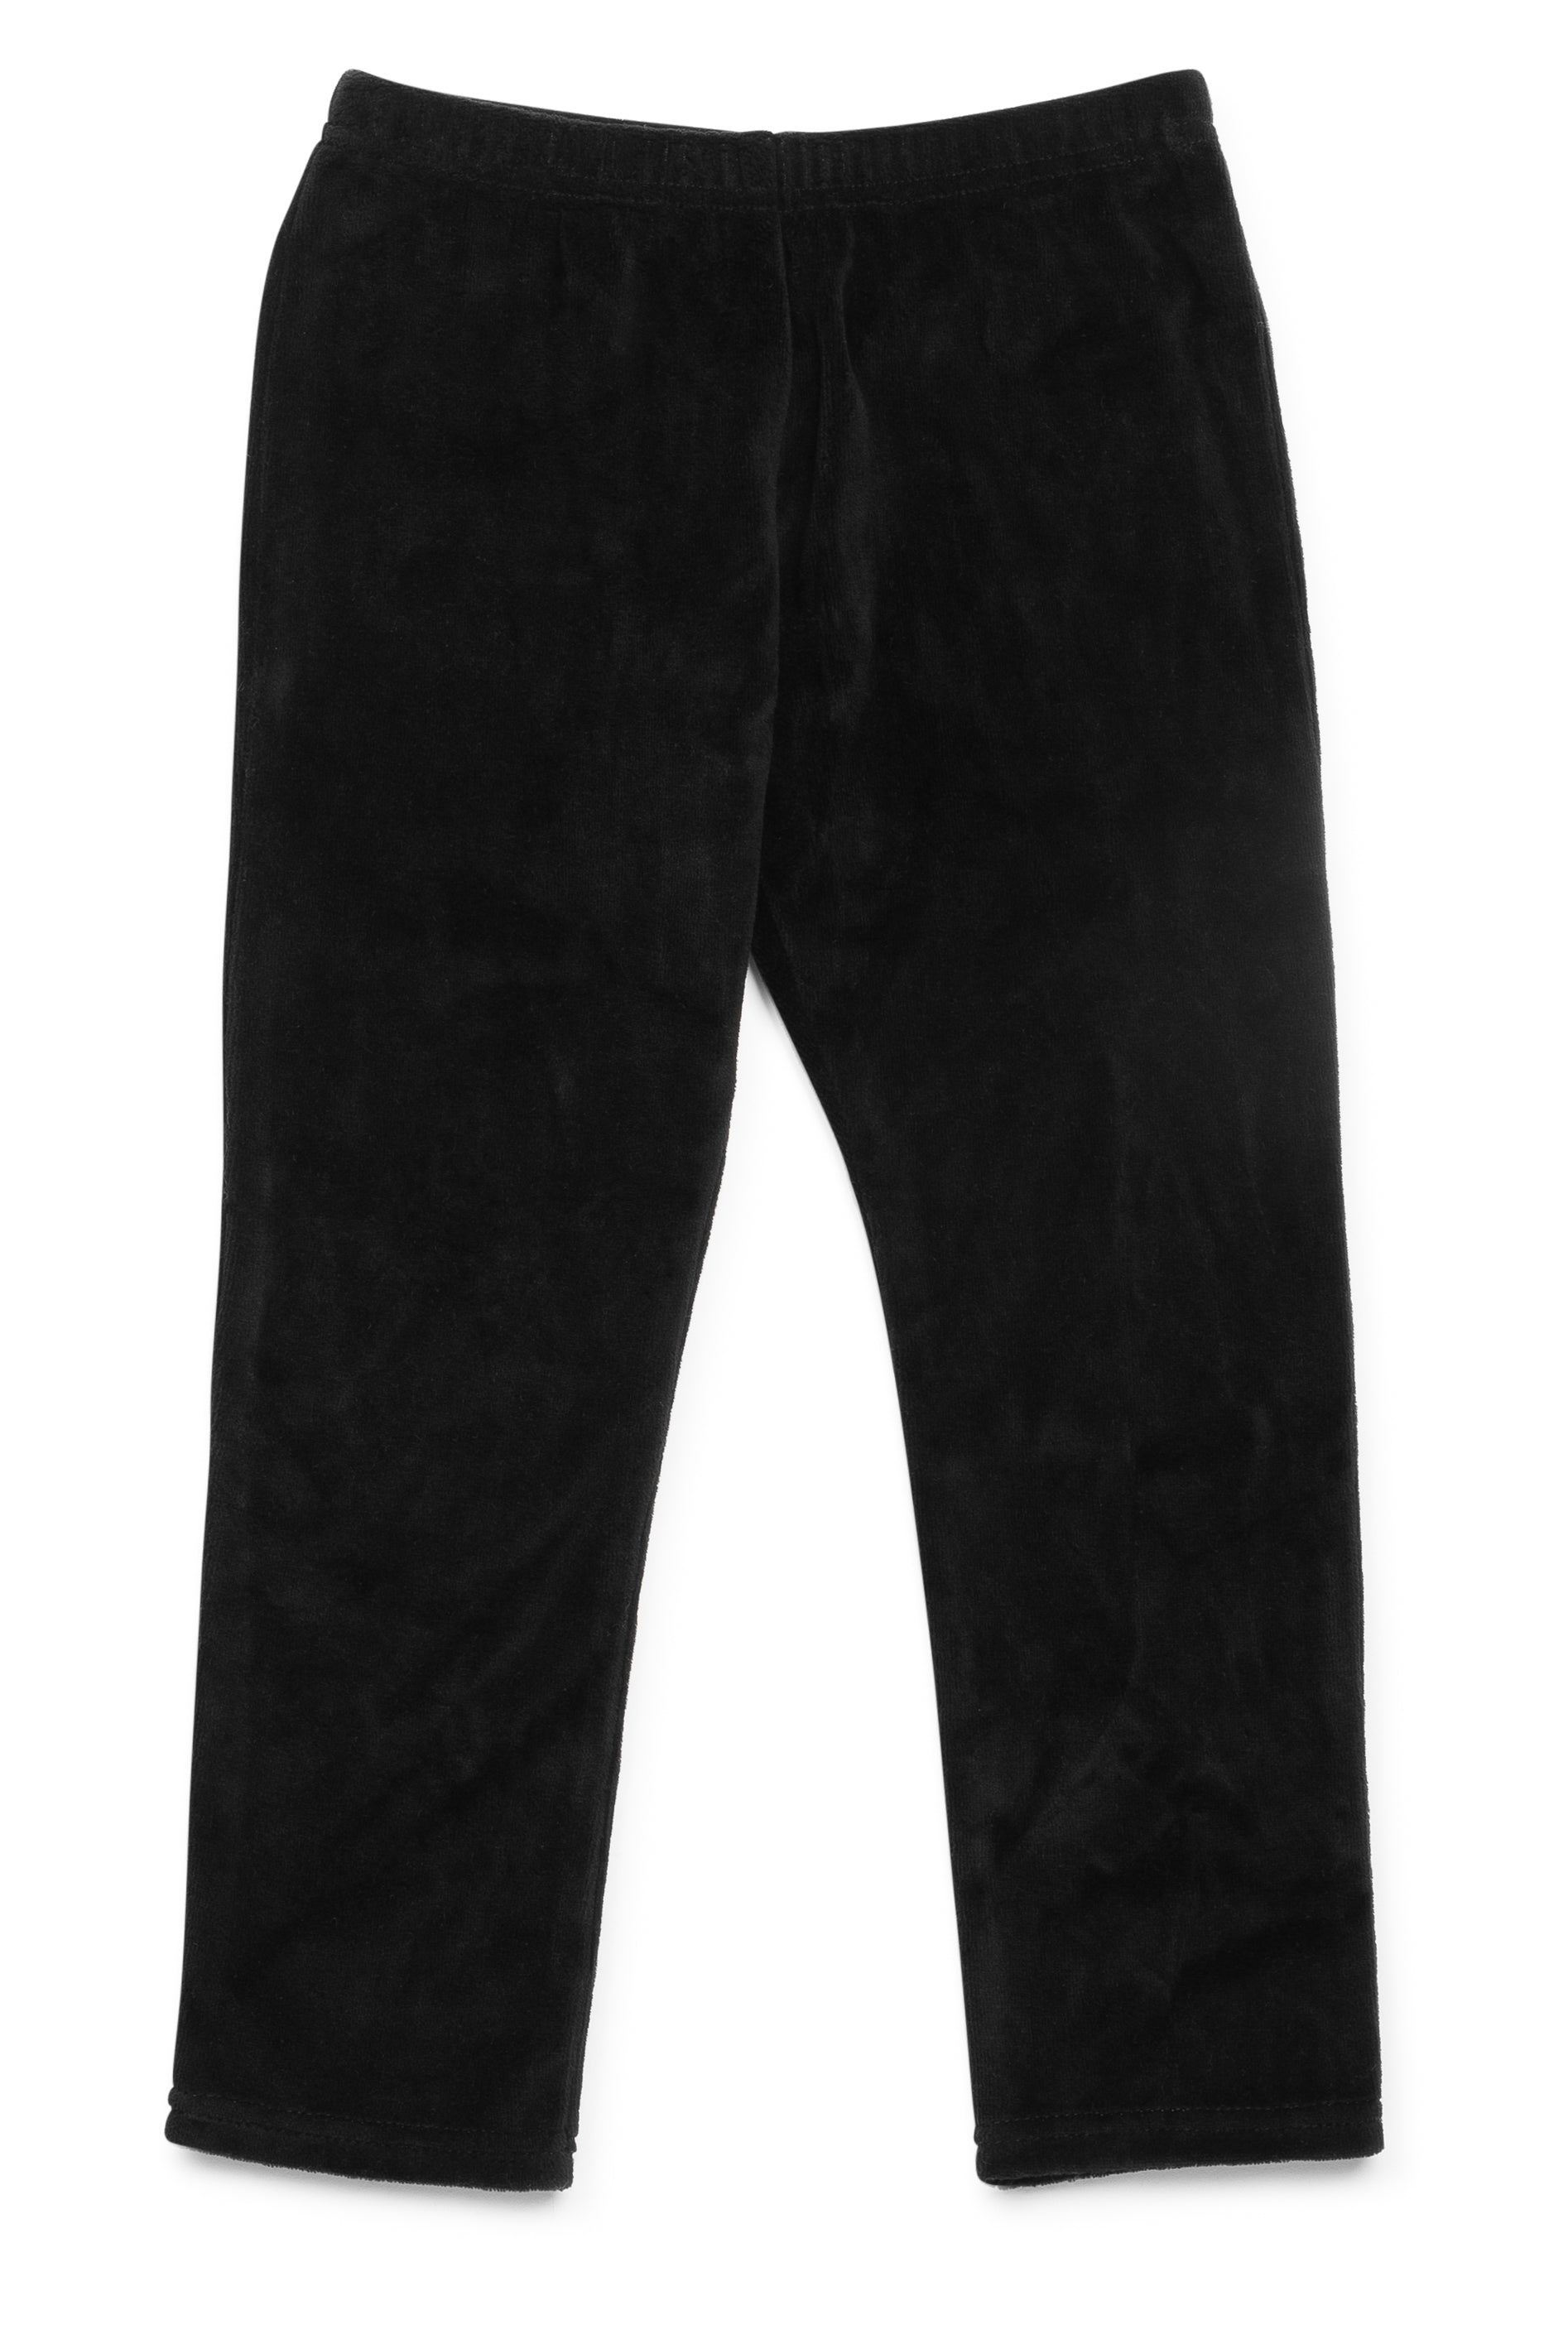 Boys Velour Grandfather PJ's - Mouche Kids